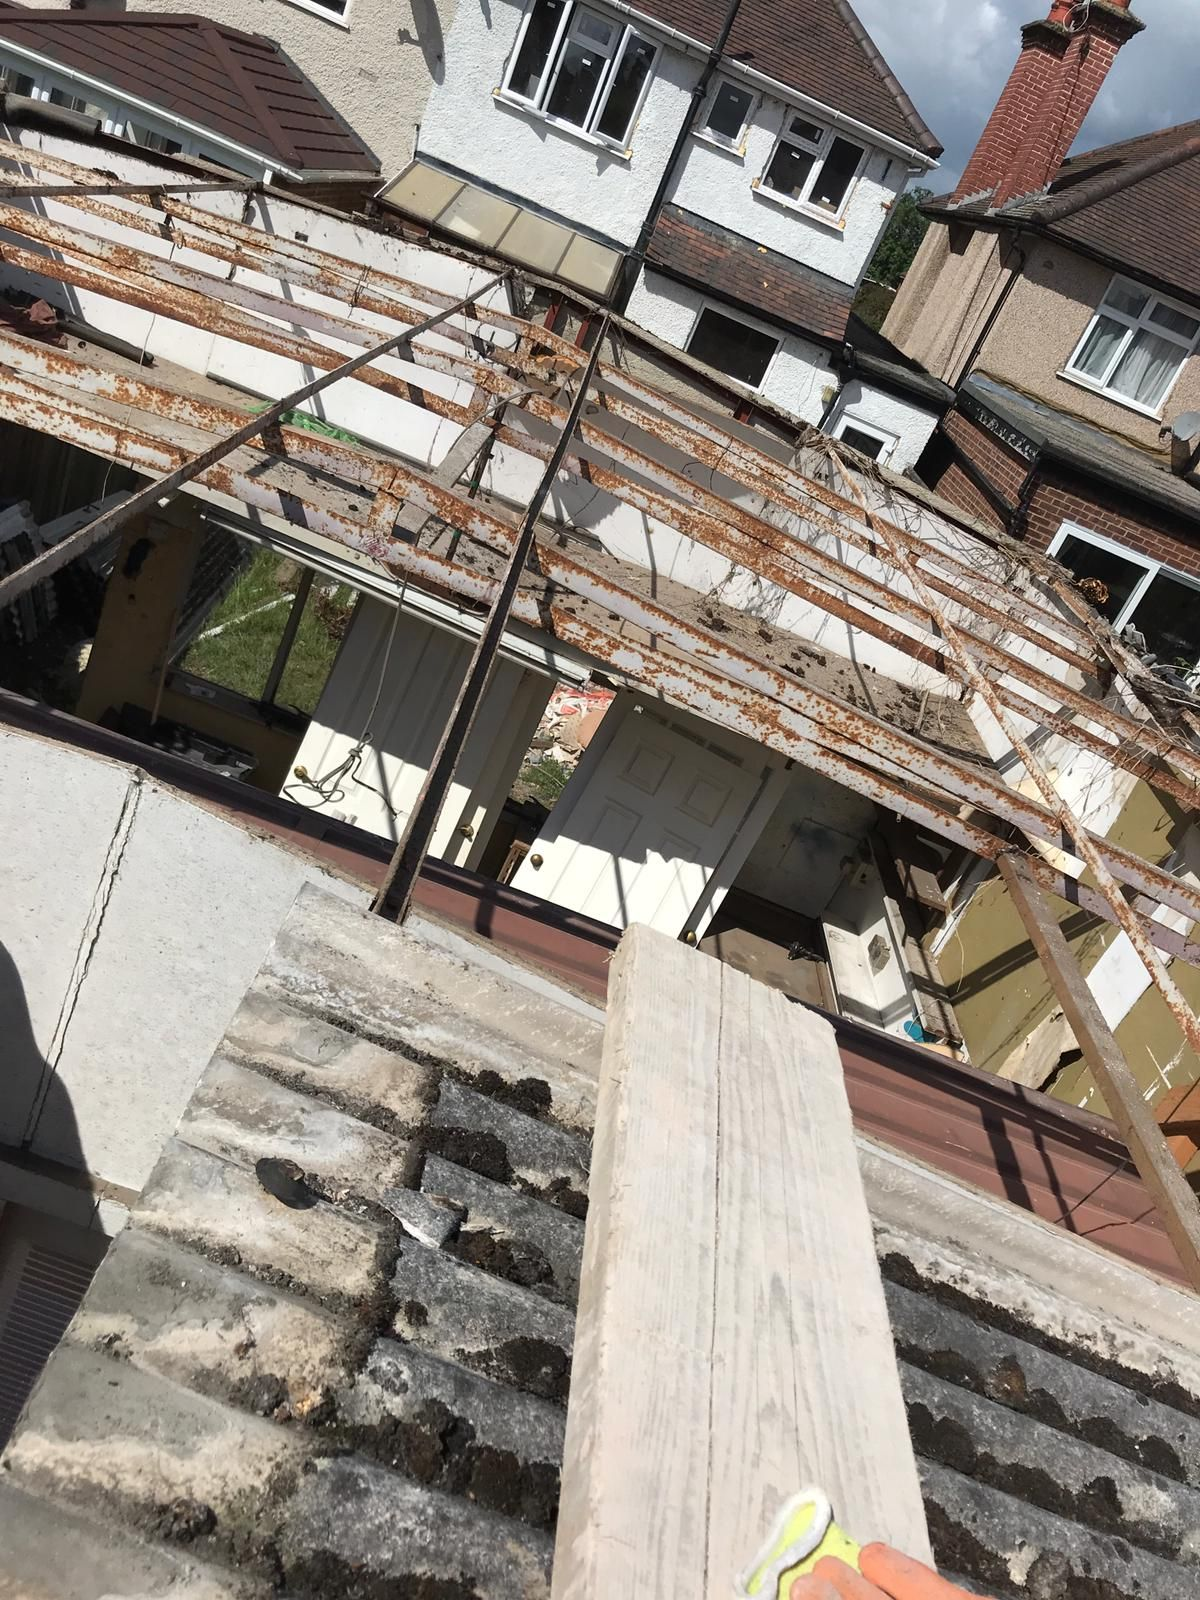 Asbestos Removal Essex Kent London And South East Uk Asbestos Removal Asbestos How To Remove